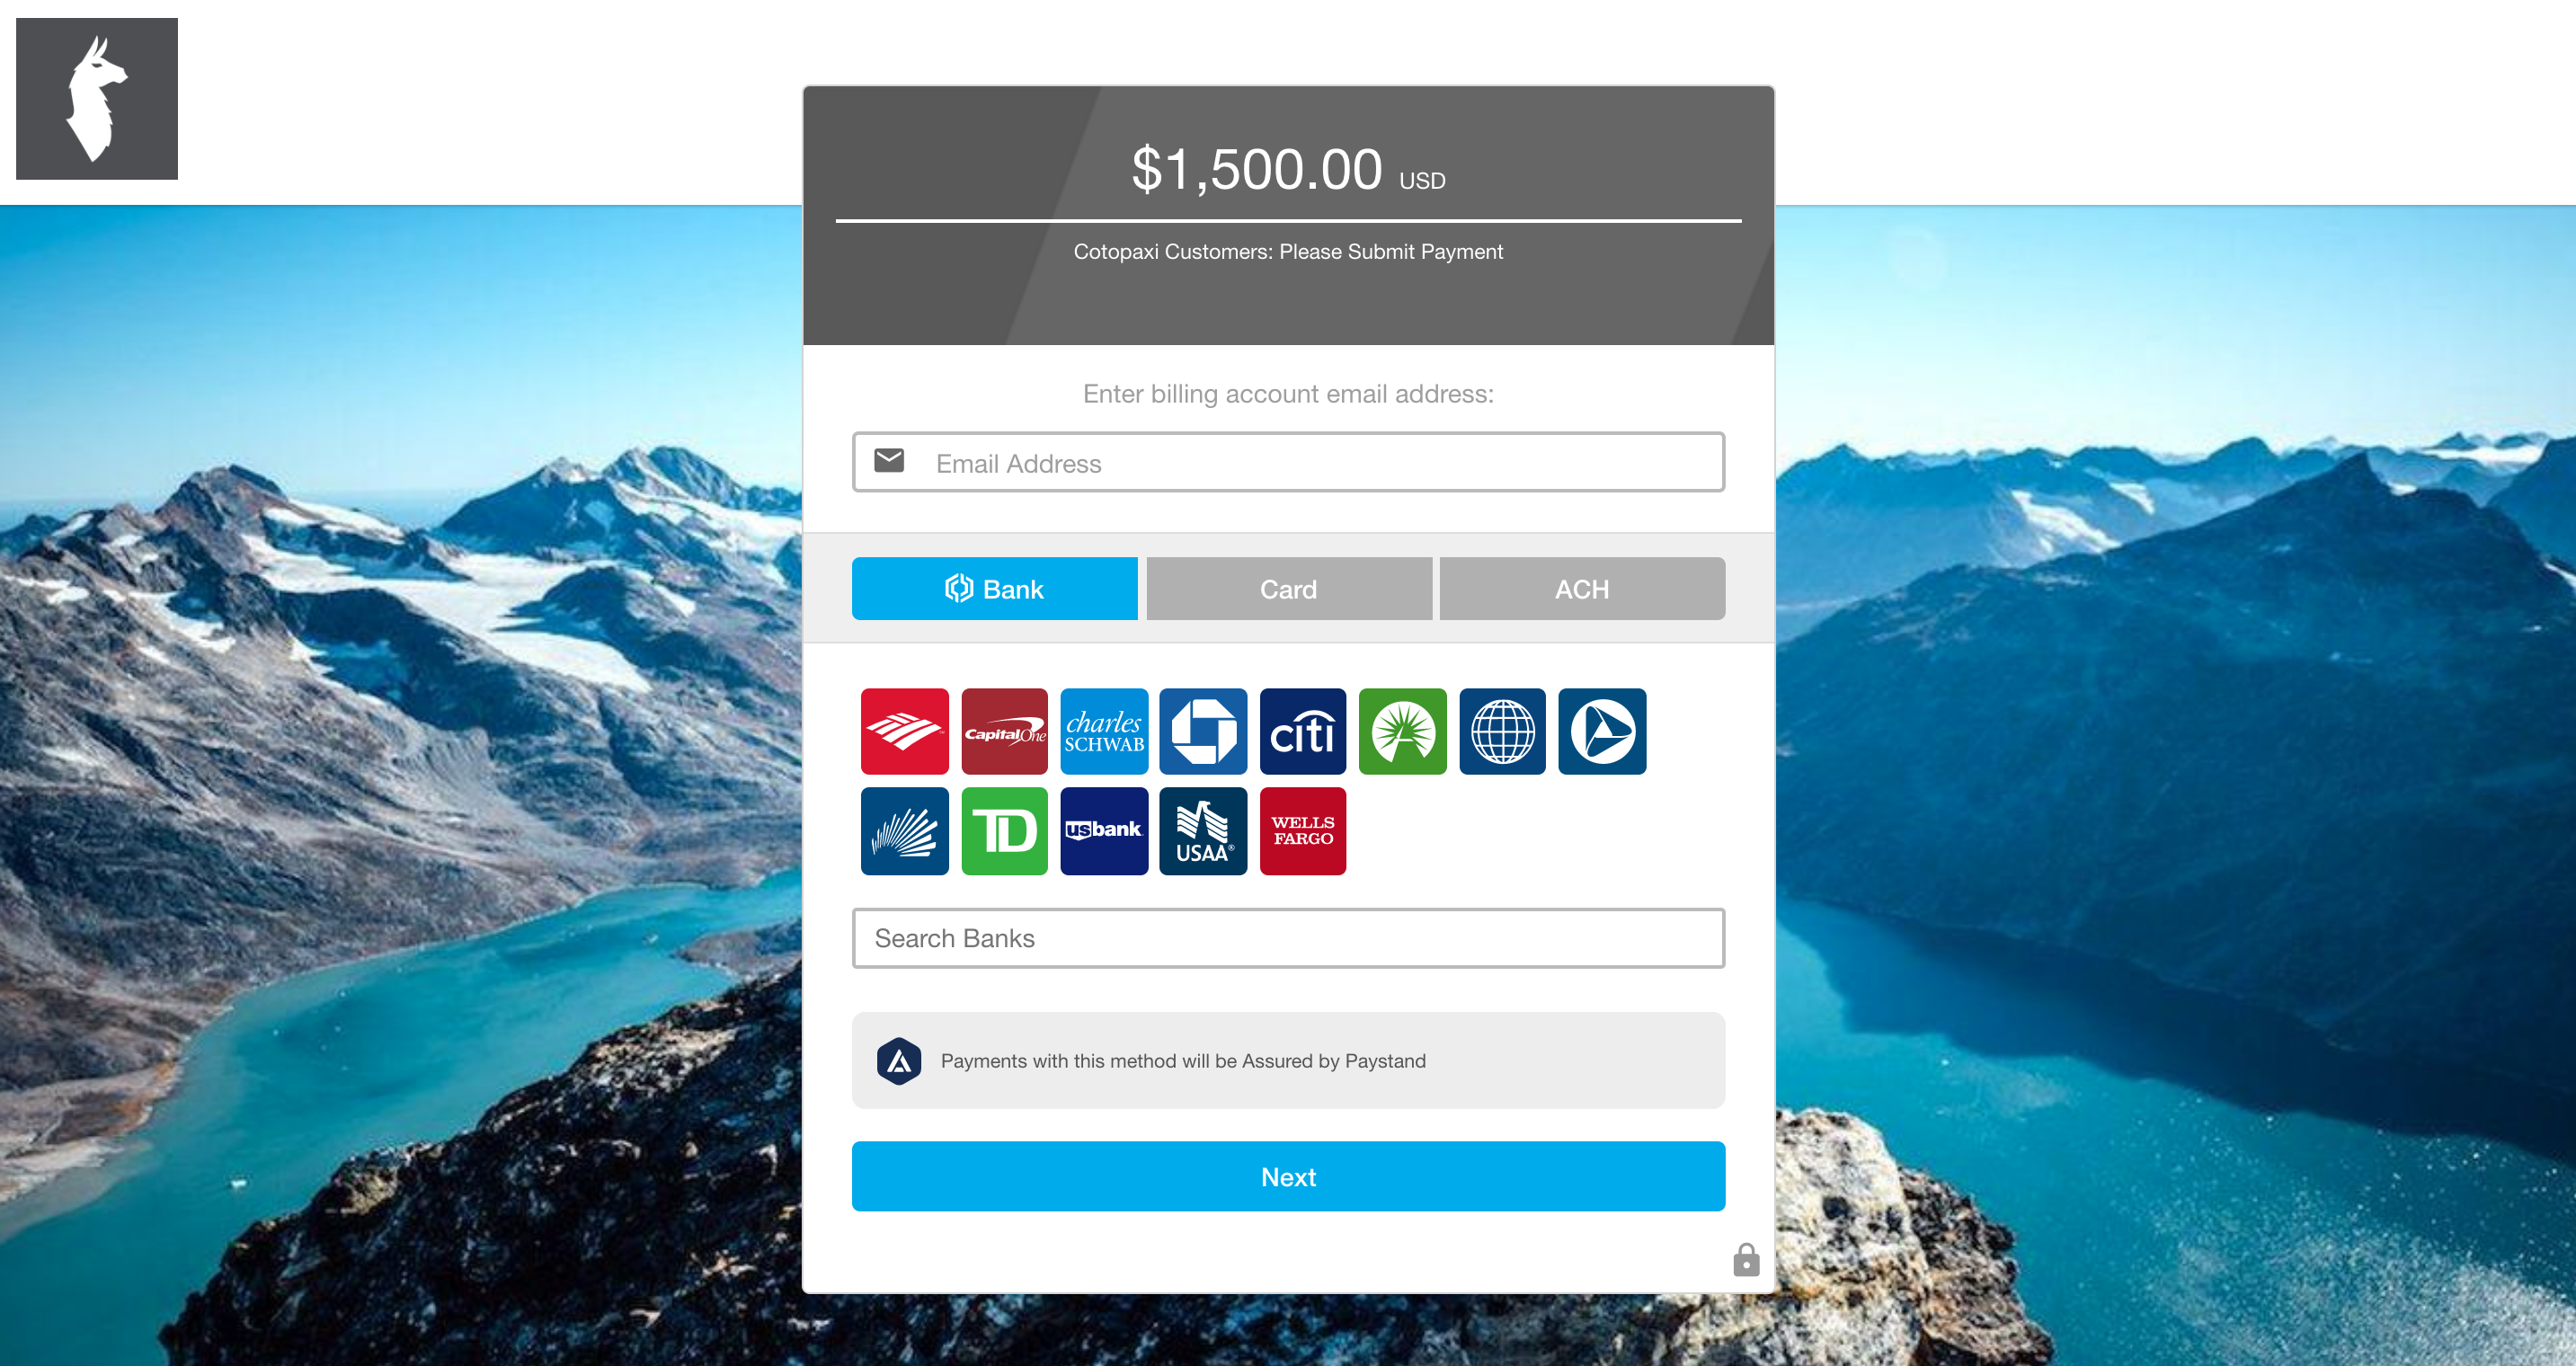 payment portal paystand cotopaxi background